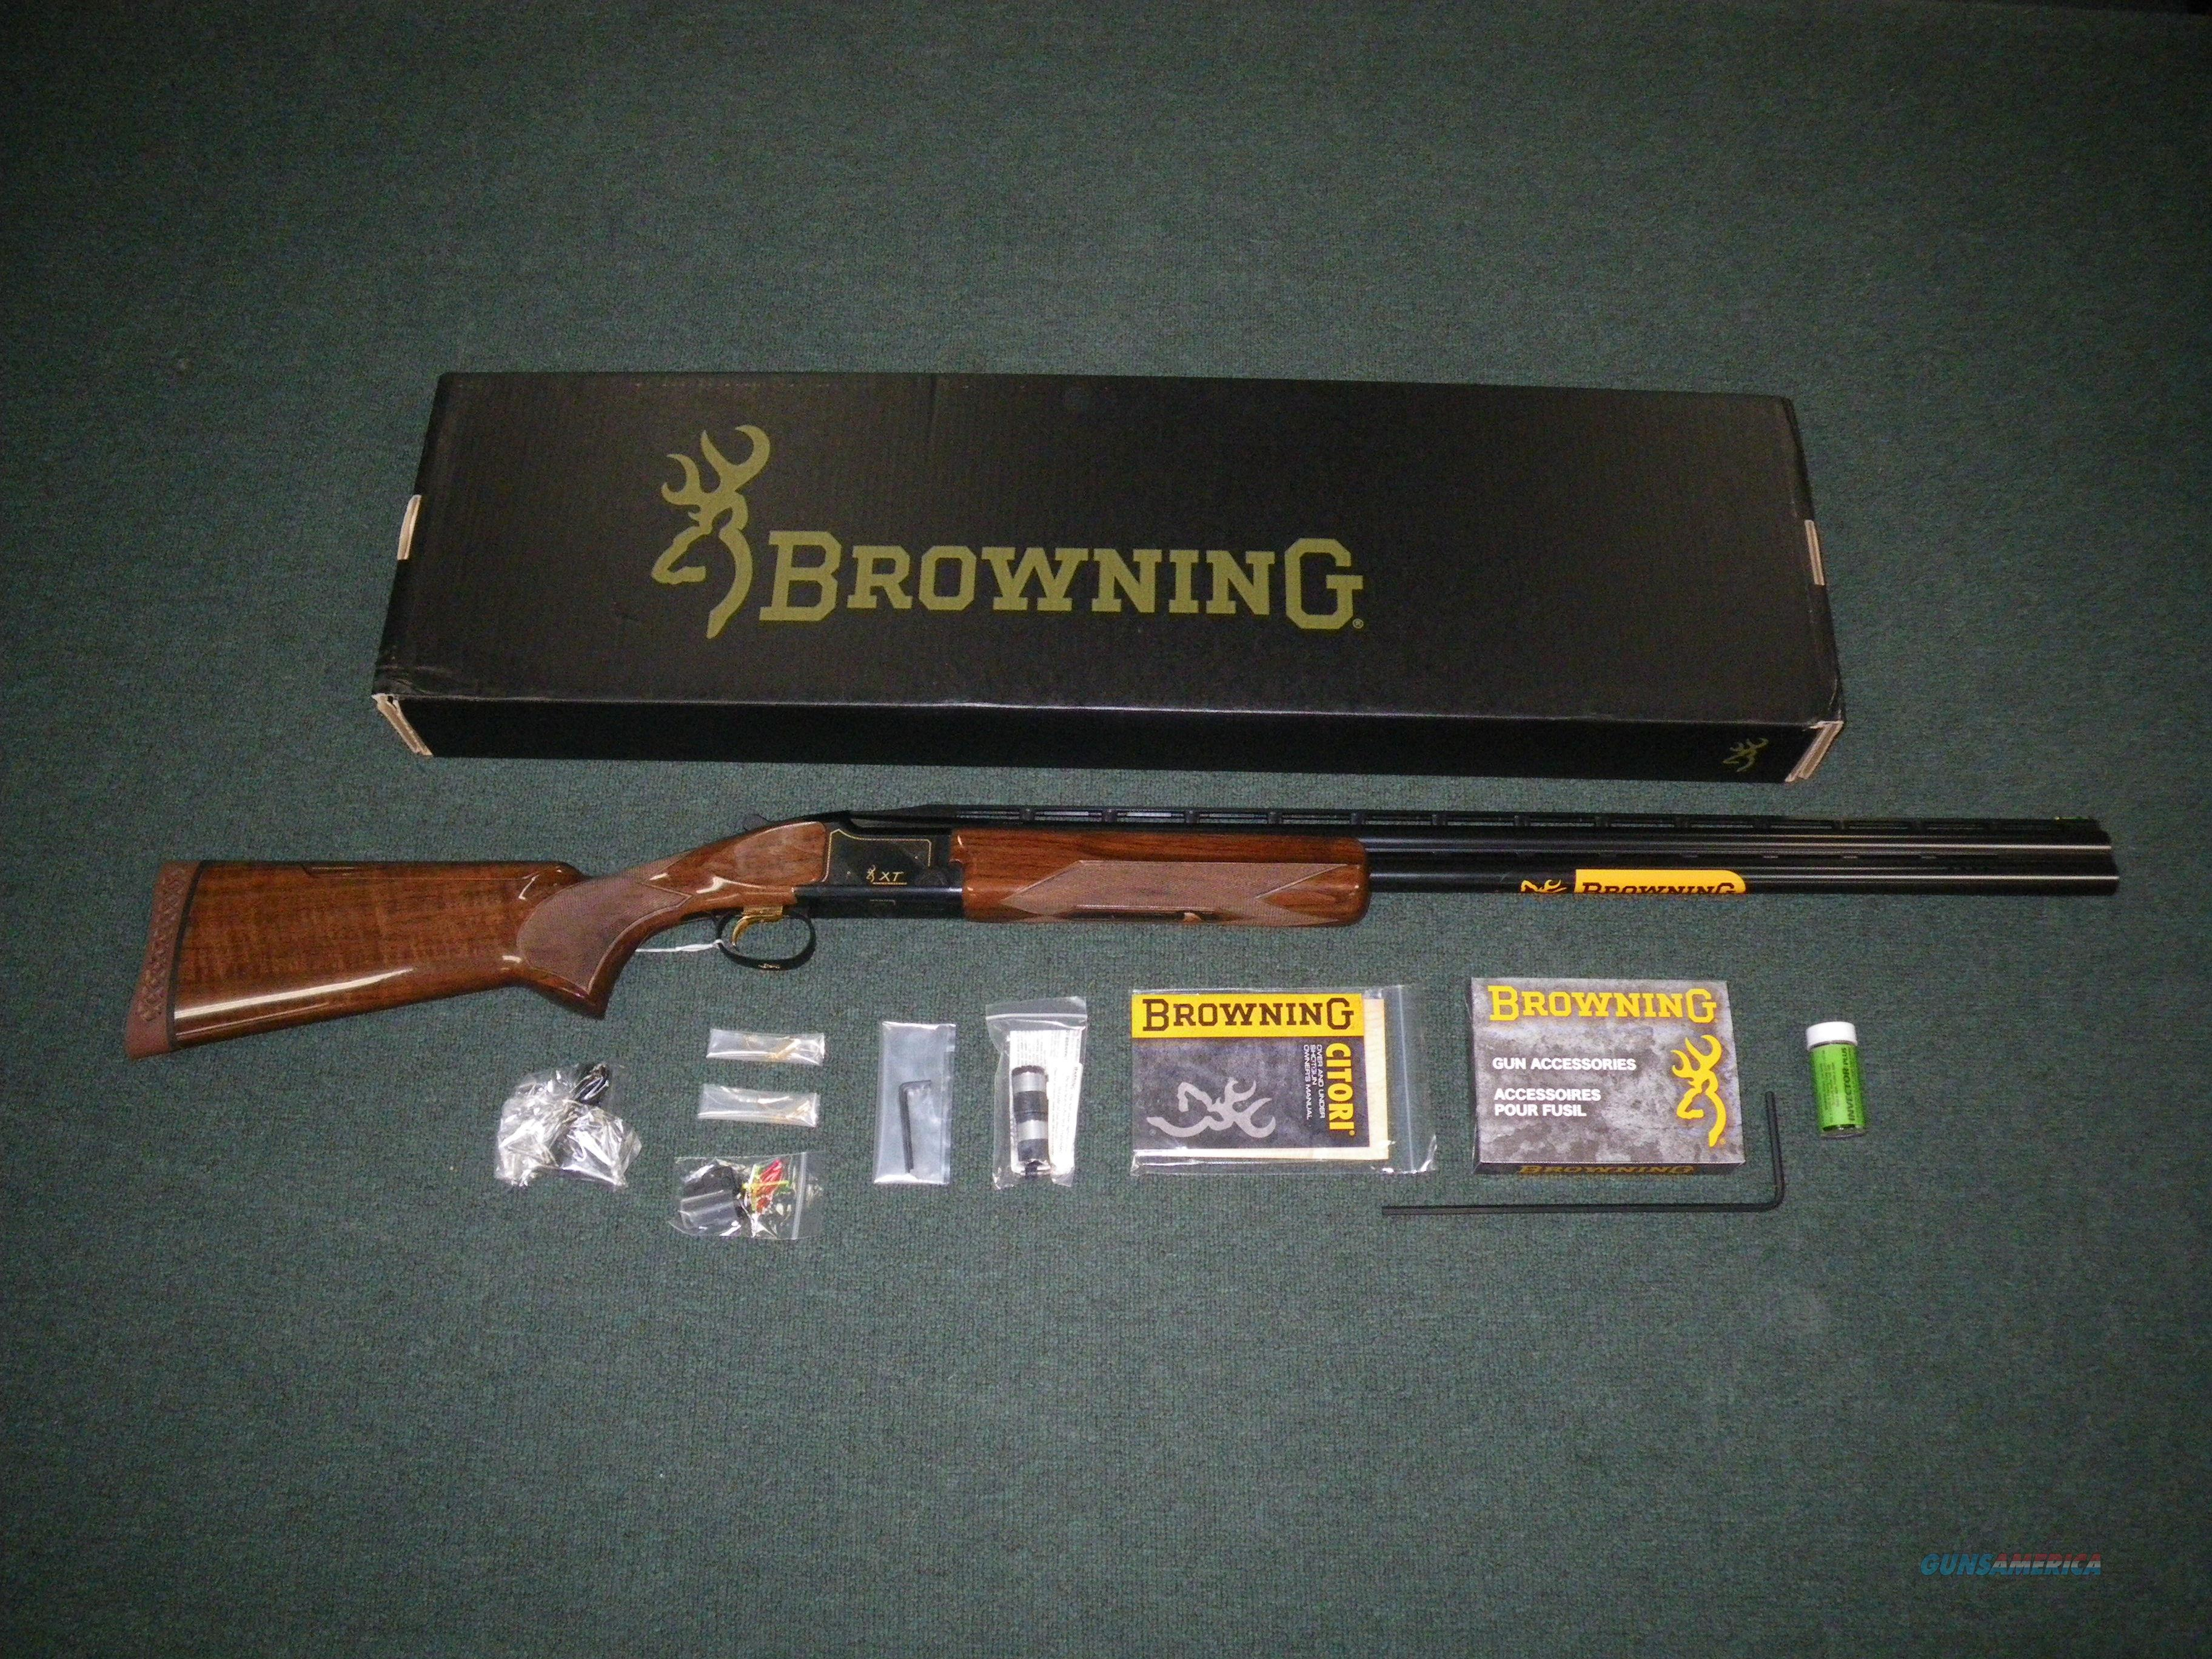 "Browning Citori XT Trap Adj Comb 12ga 30"" NEW Grd1 #013621426  Guns > Shotguns > Browning Shotguns > Over Unders > Citori > Trap/Skeet"